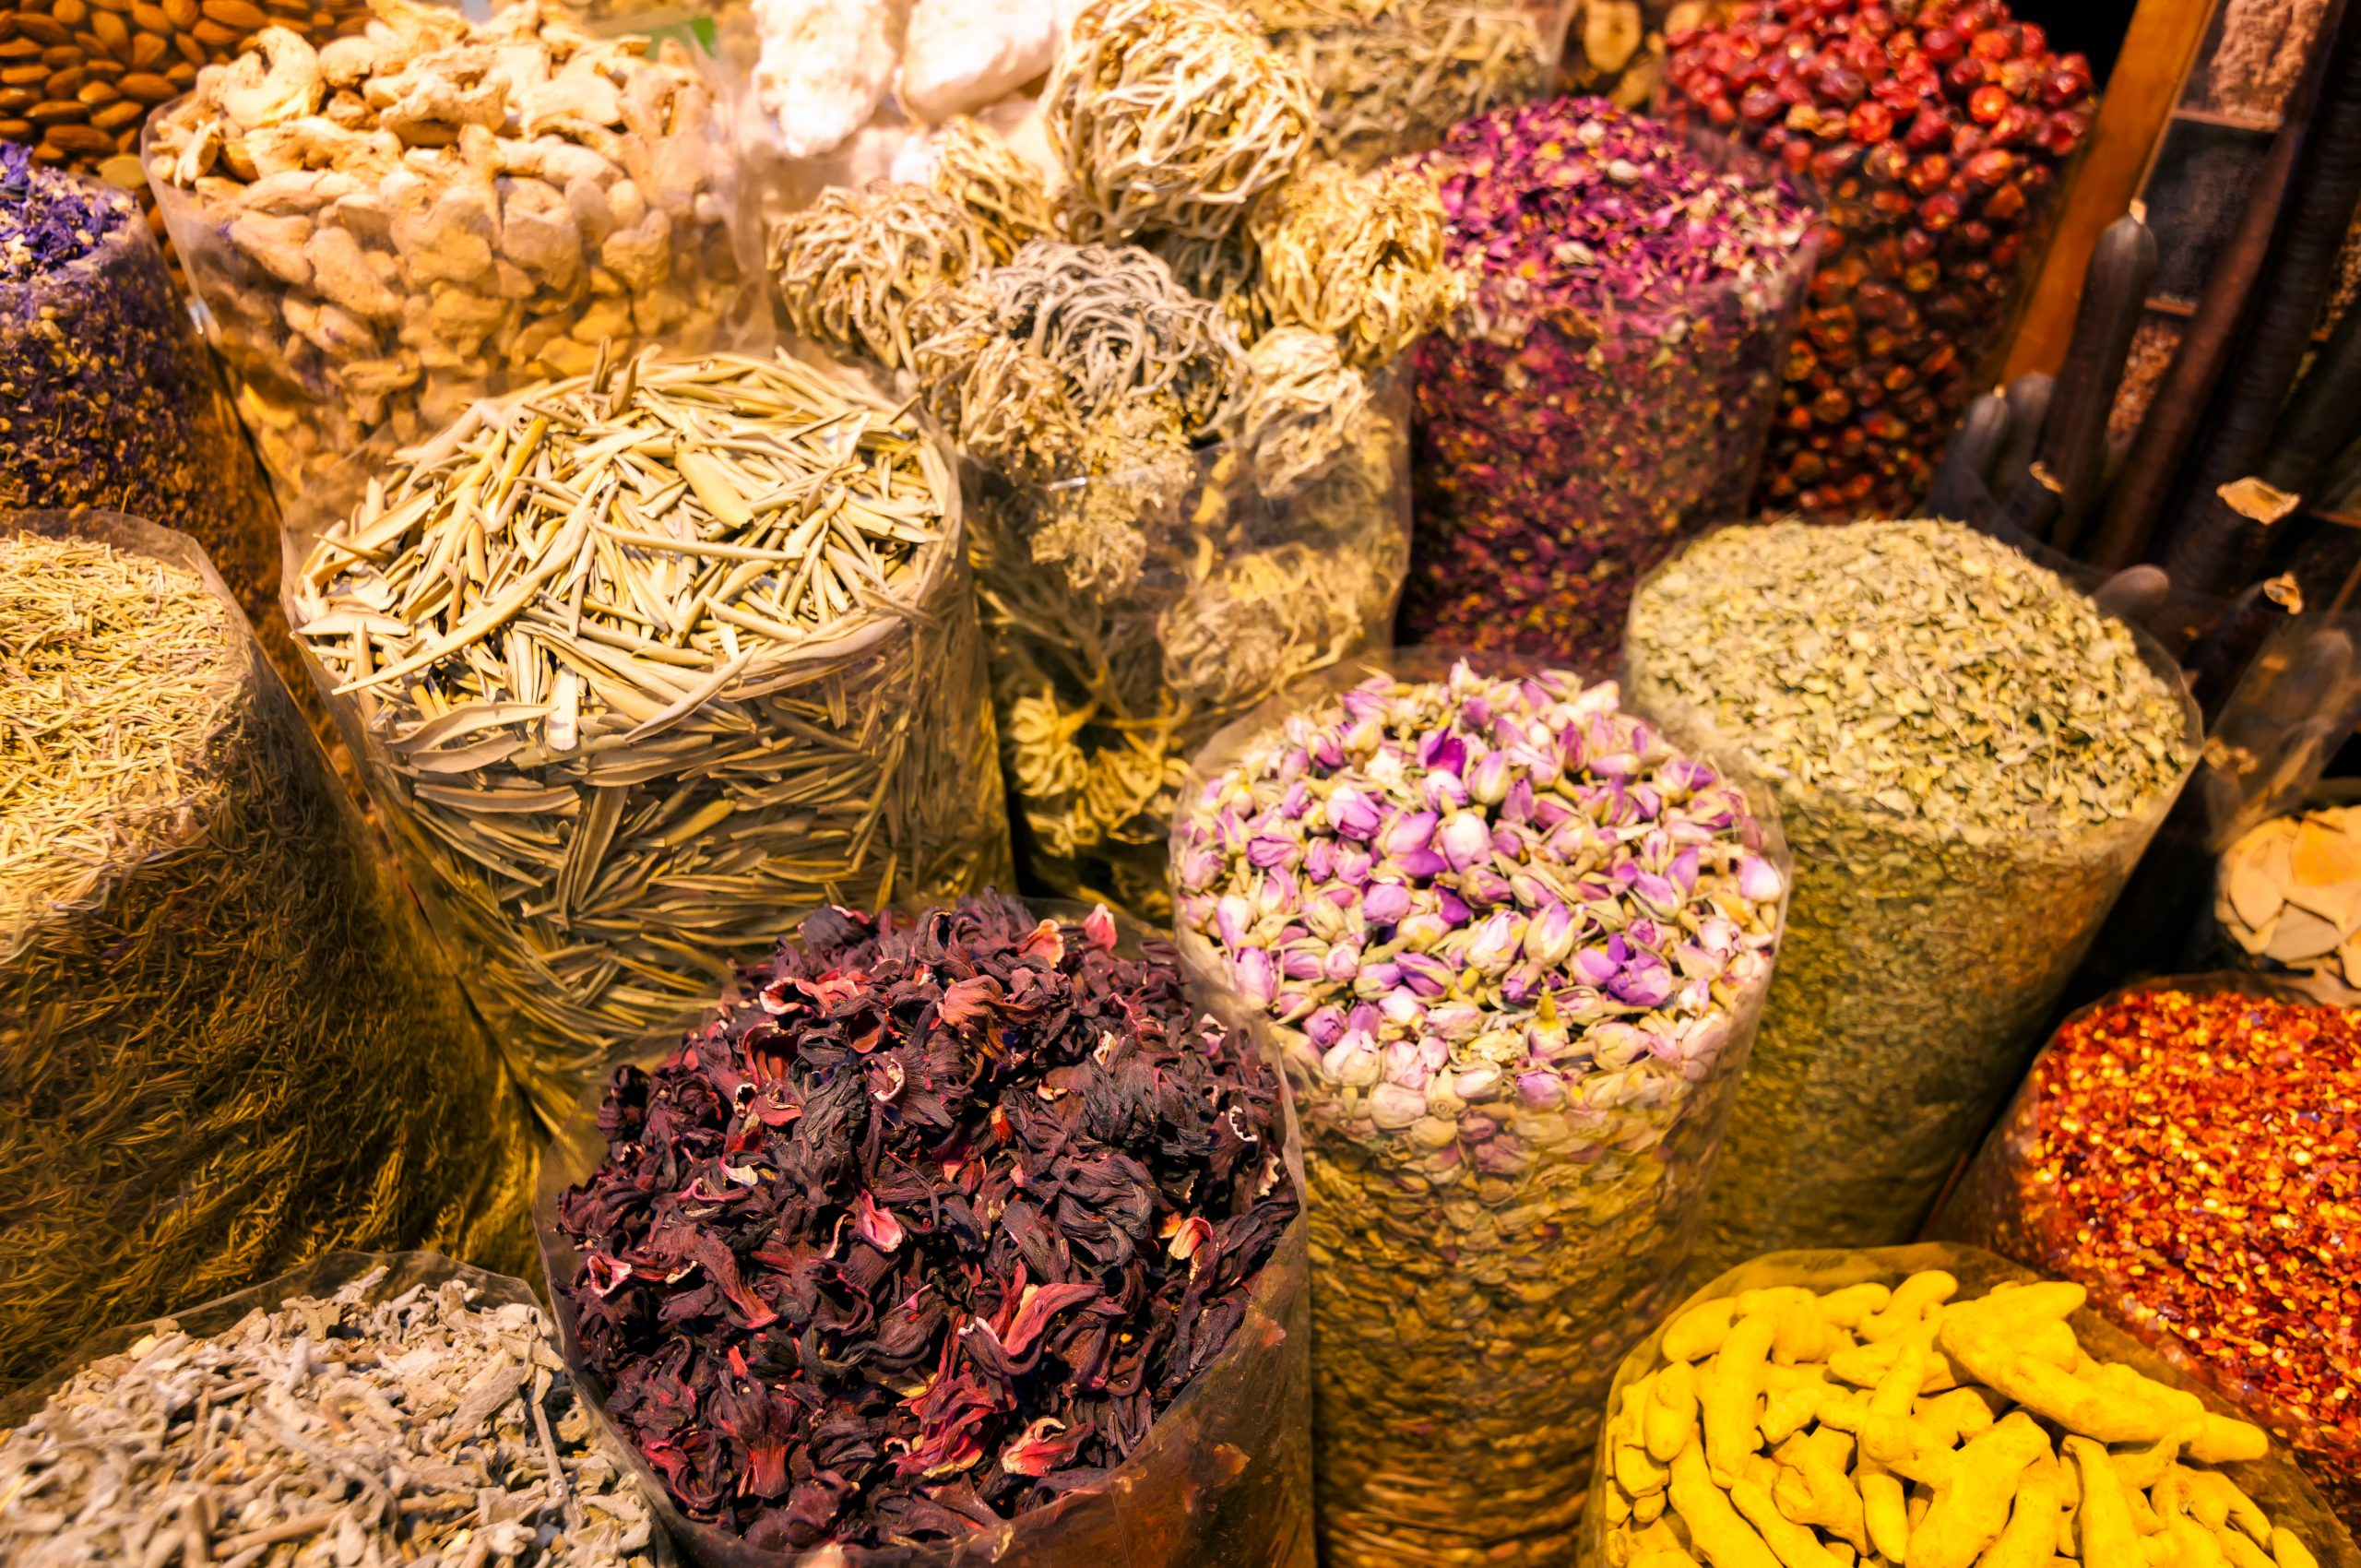 Amazing traditional souk market in Dubai creek district Deira with different baskets full of spices, Dubai, United Arab Emirates.